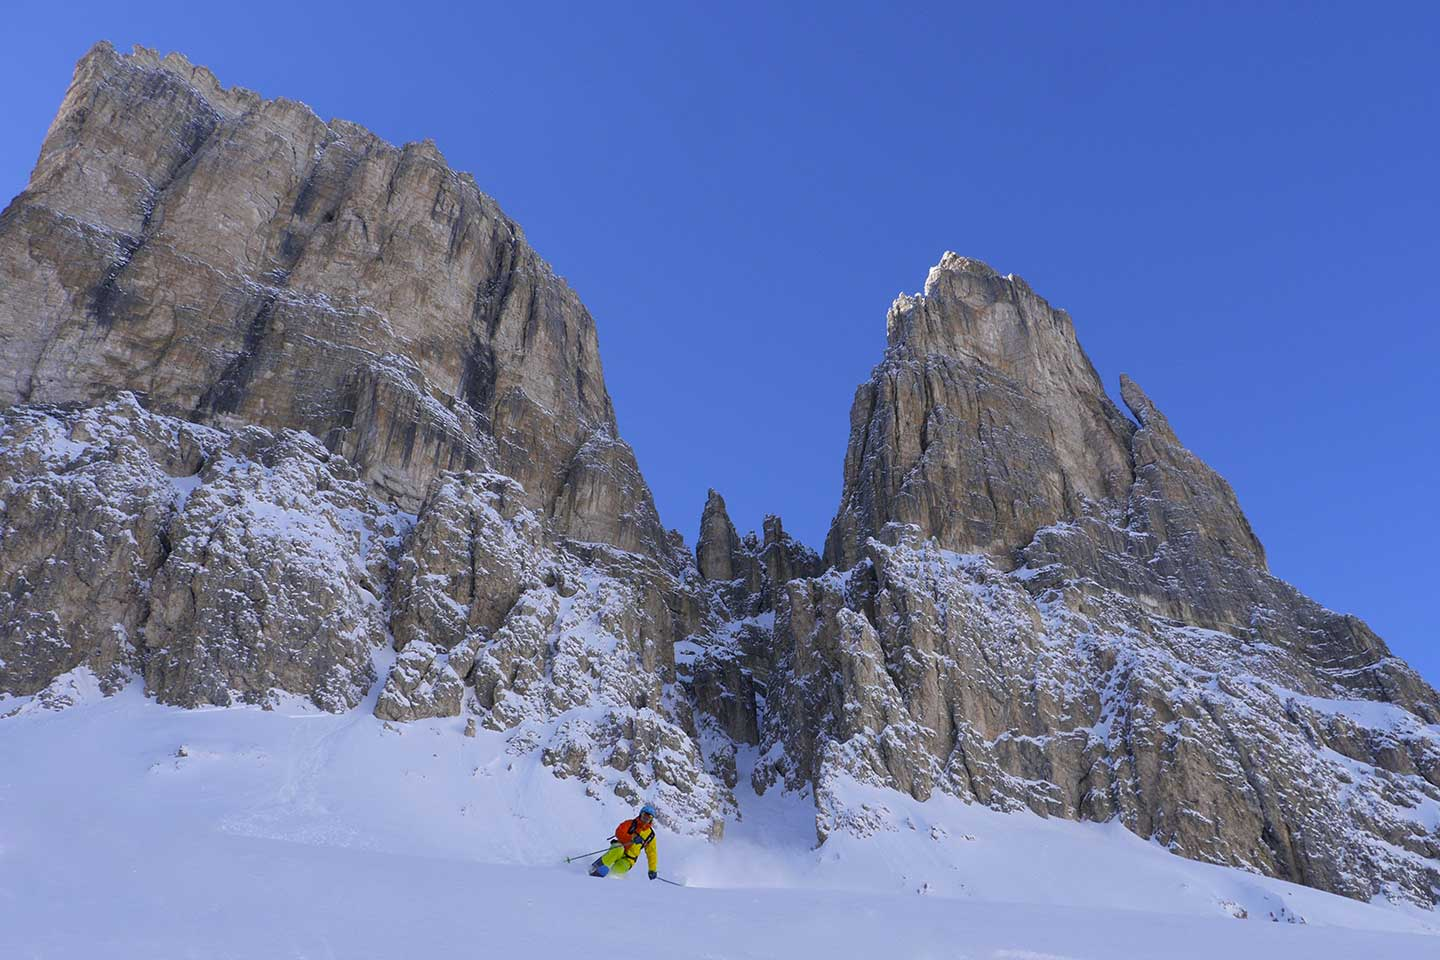 Sella Off-piste Skiing